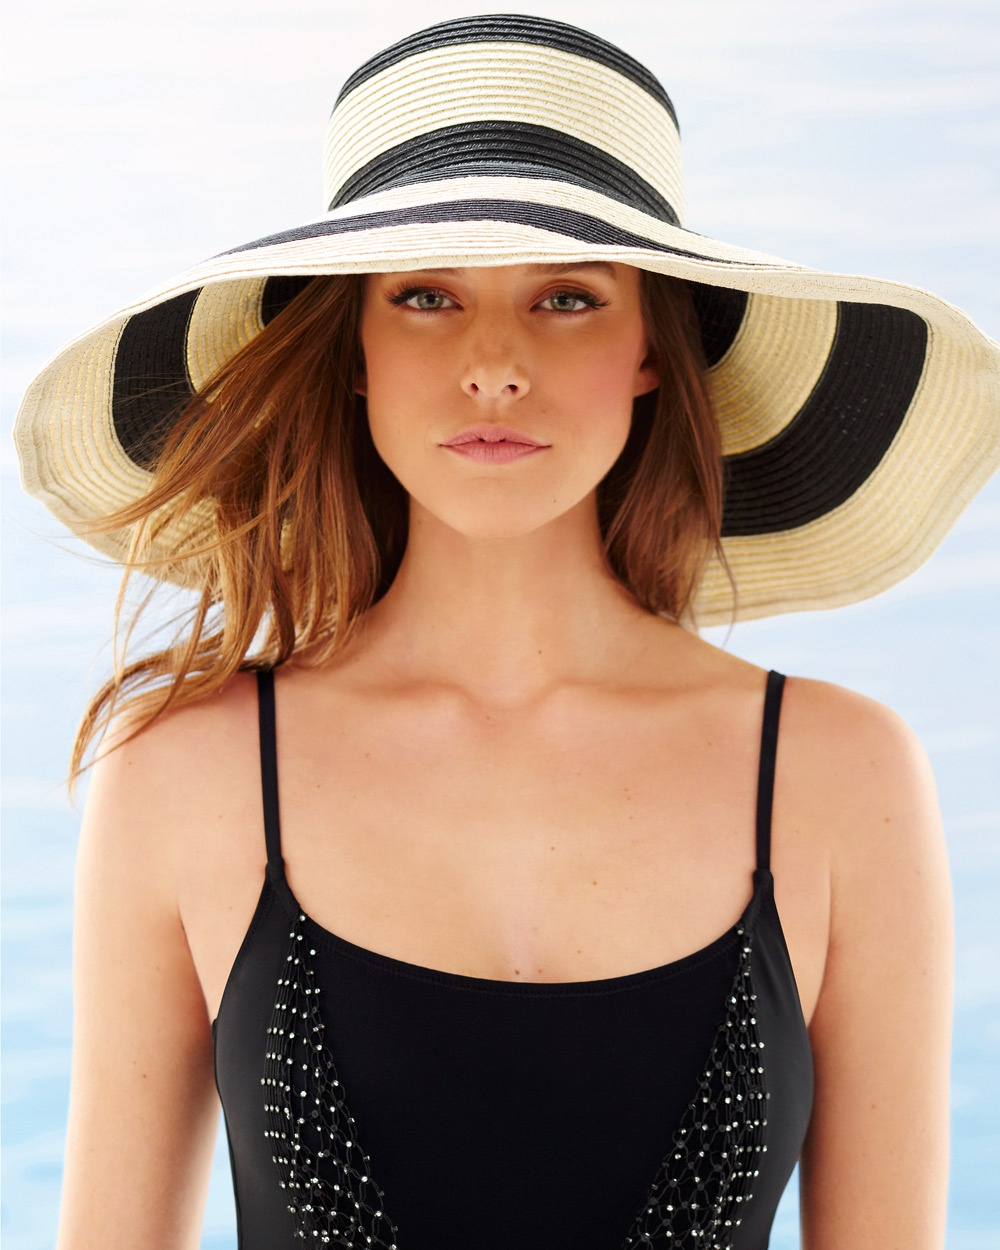 Striped-Straw-Hats5 10 Women's Hat Trends For Summer 2018